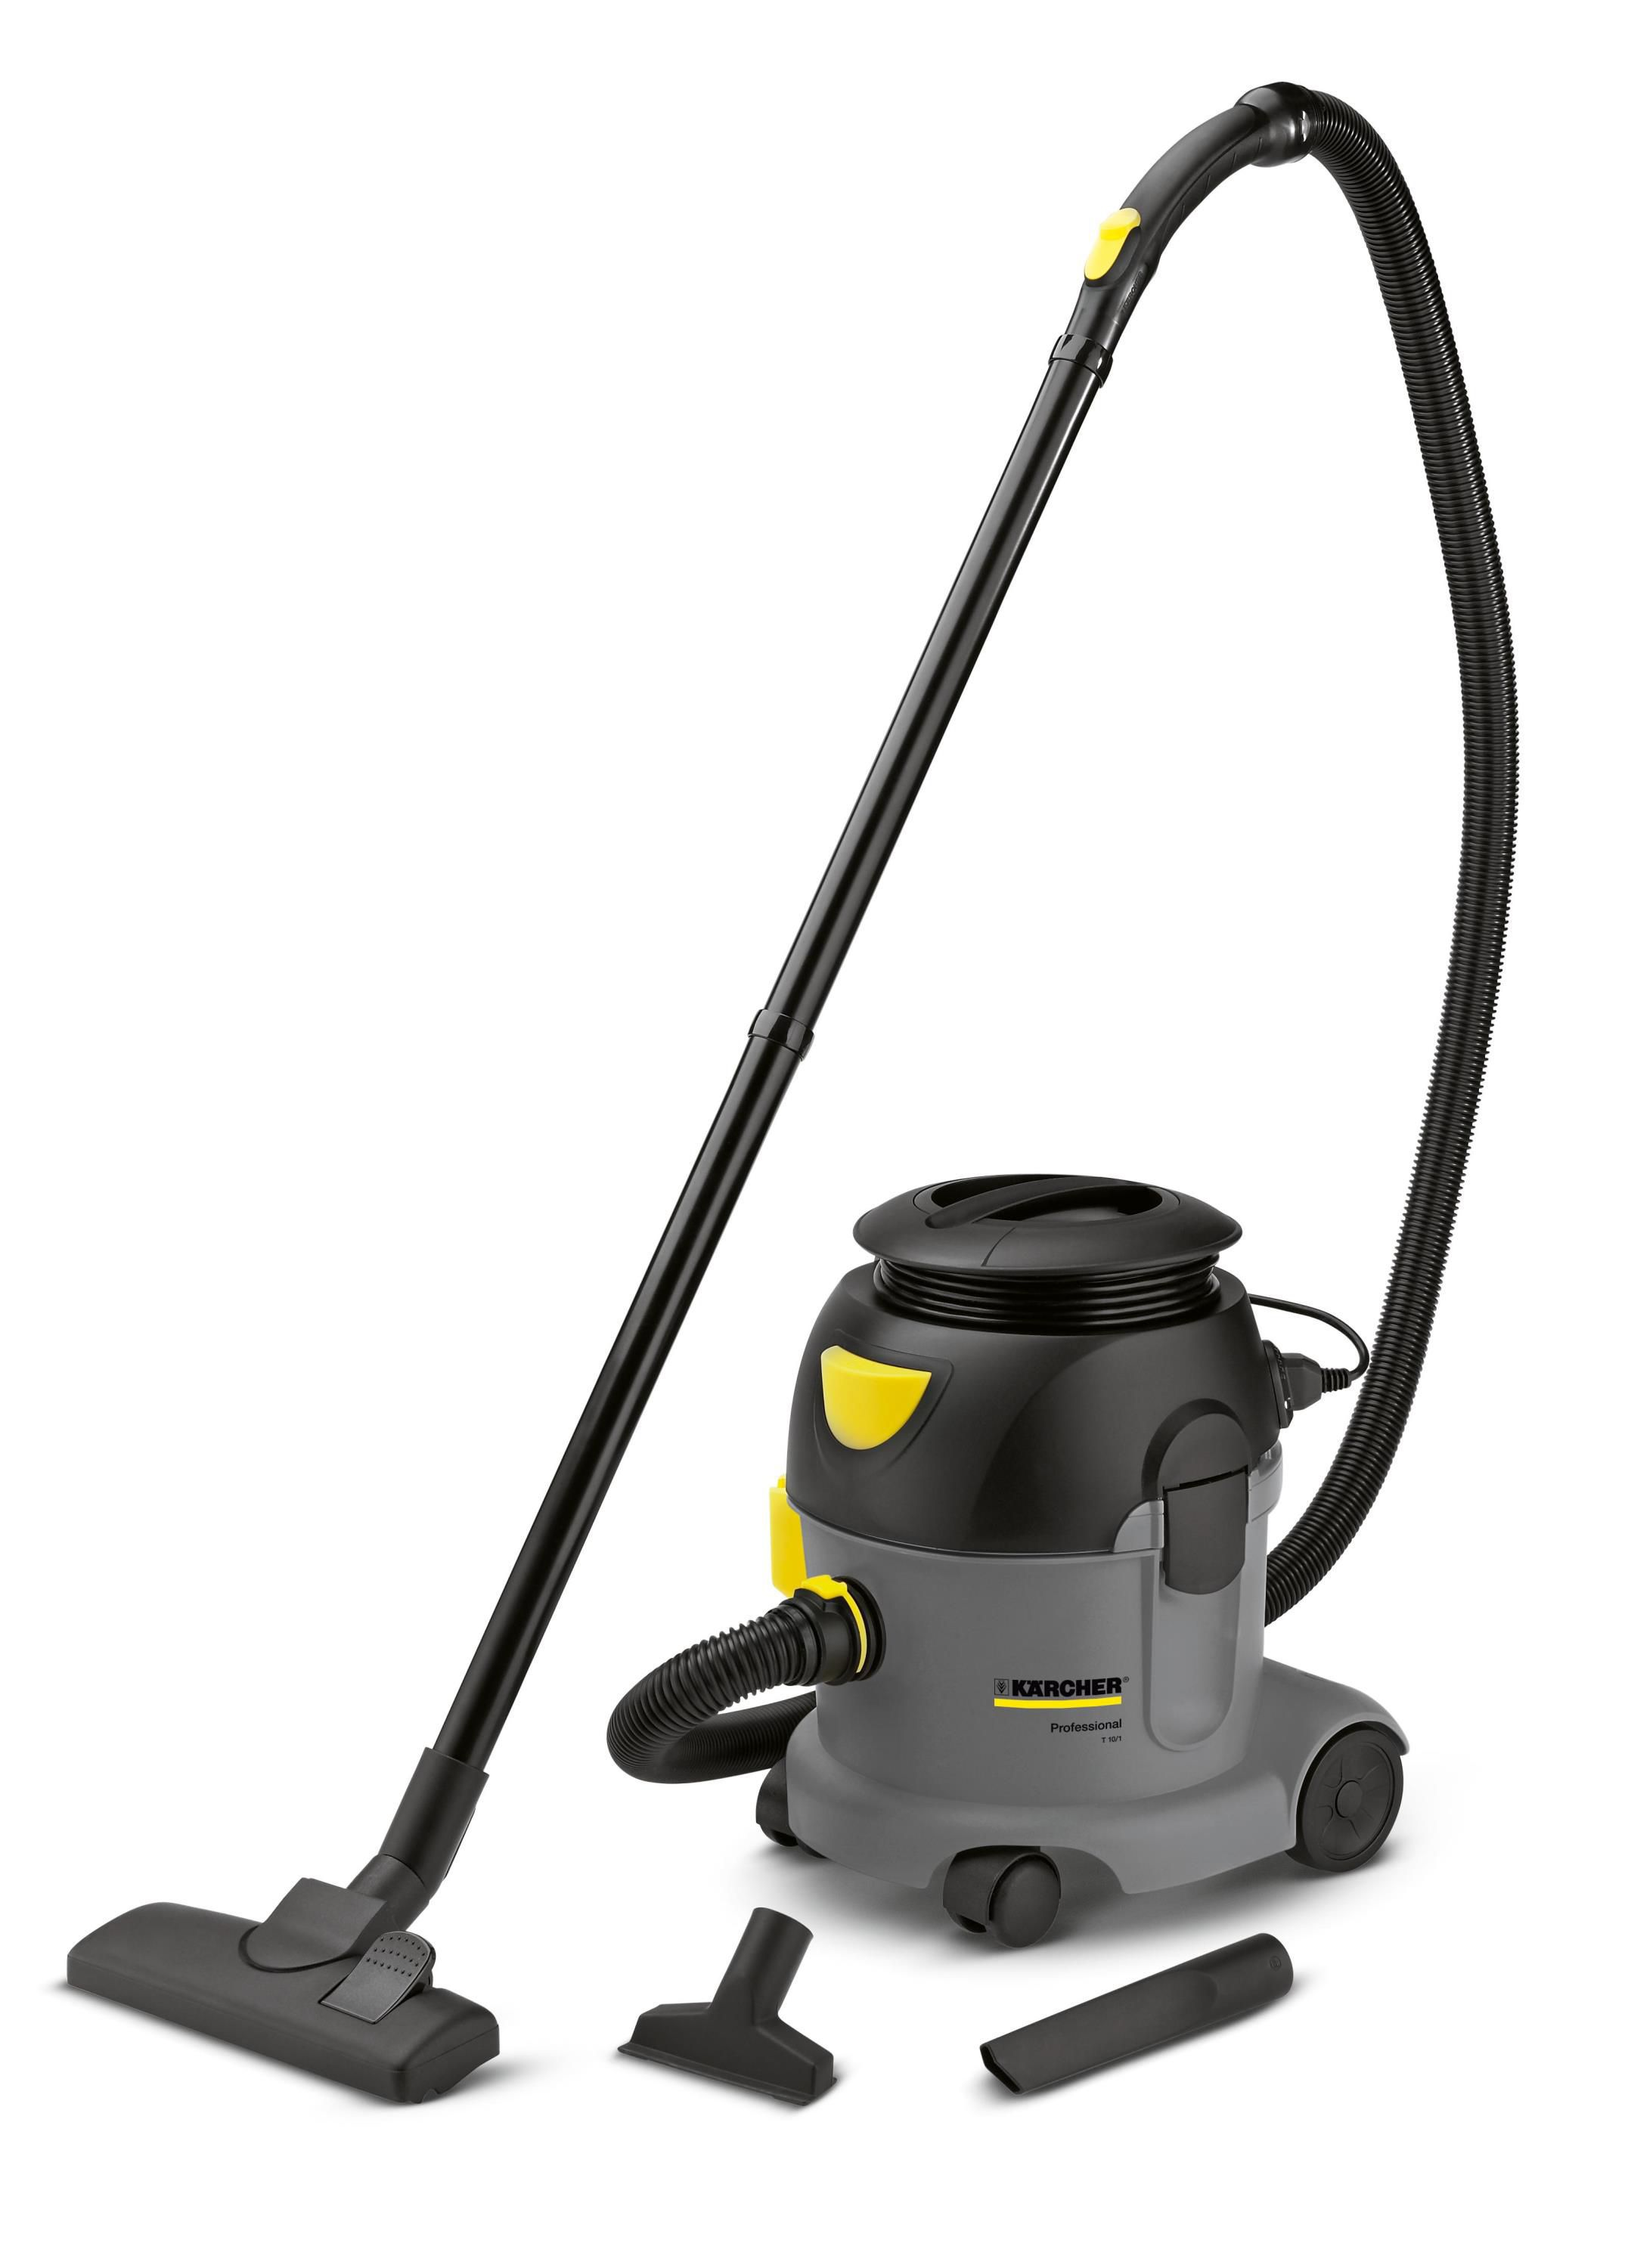 Karcher Vacuum Cleaners Corded 10L Dry Cleaner